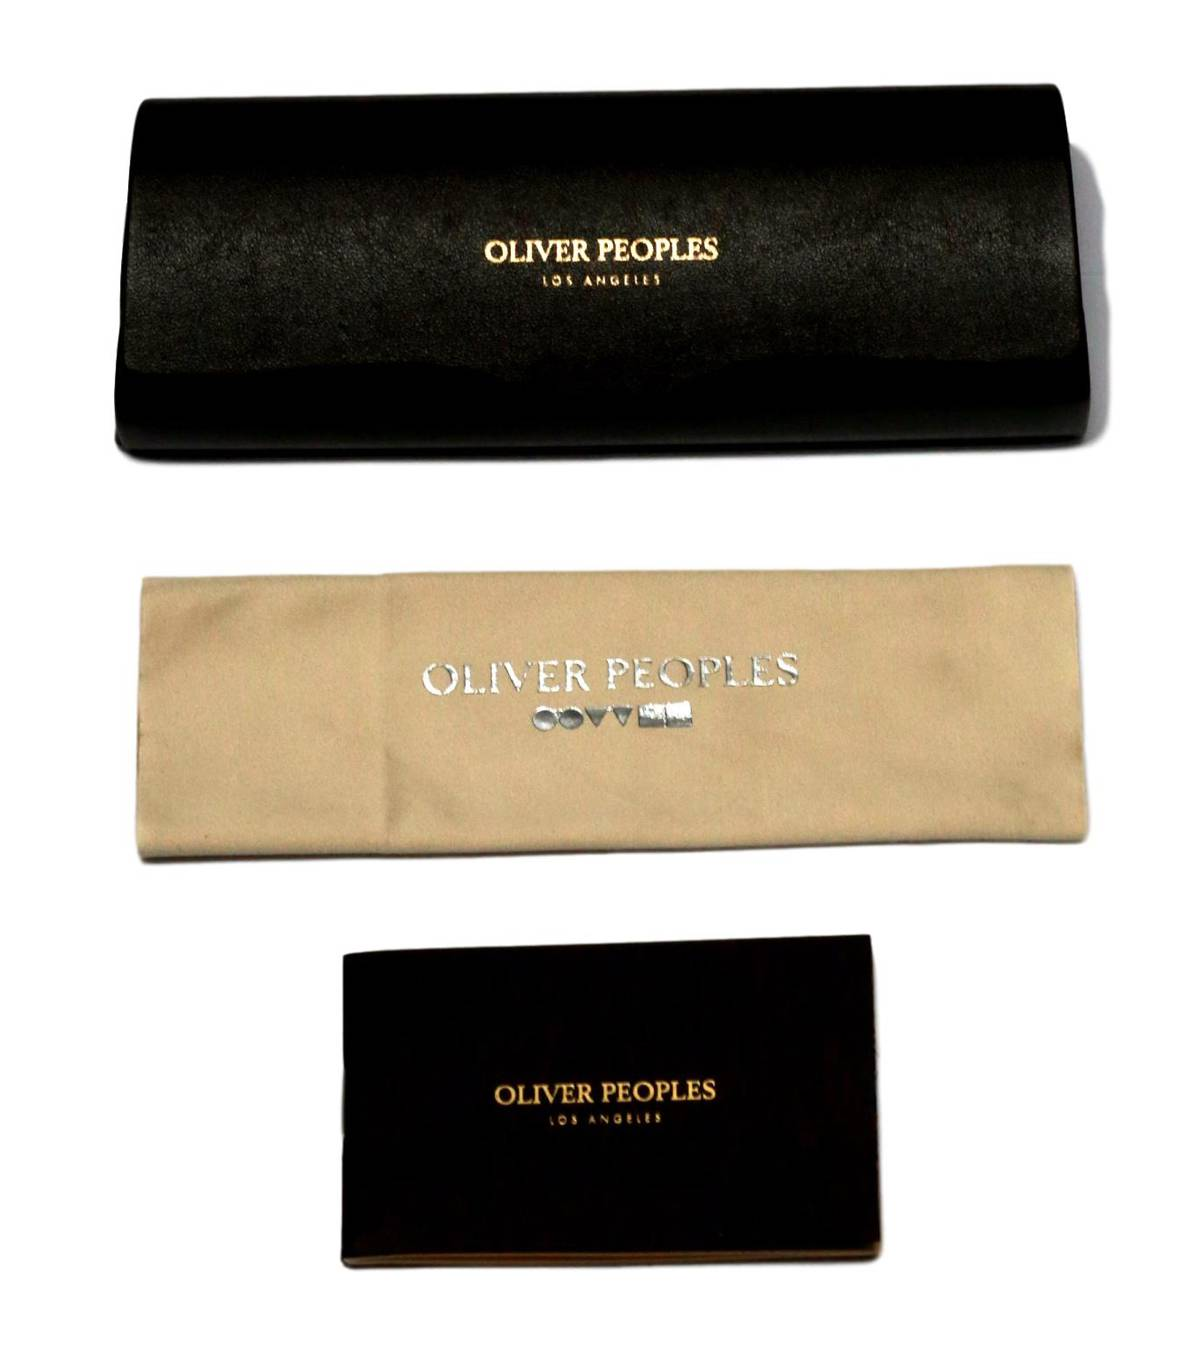 Oliver Peoples Eyewear Case